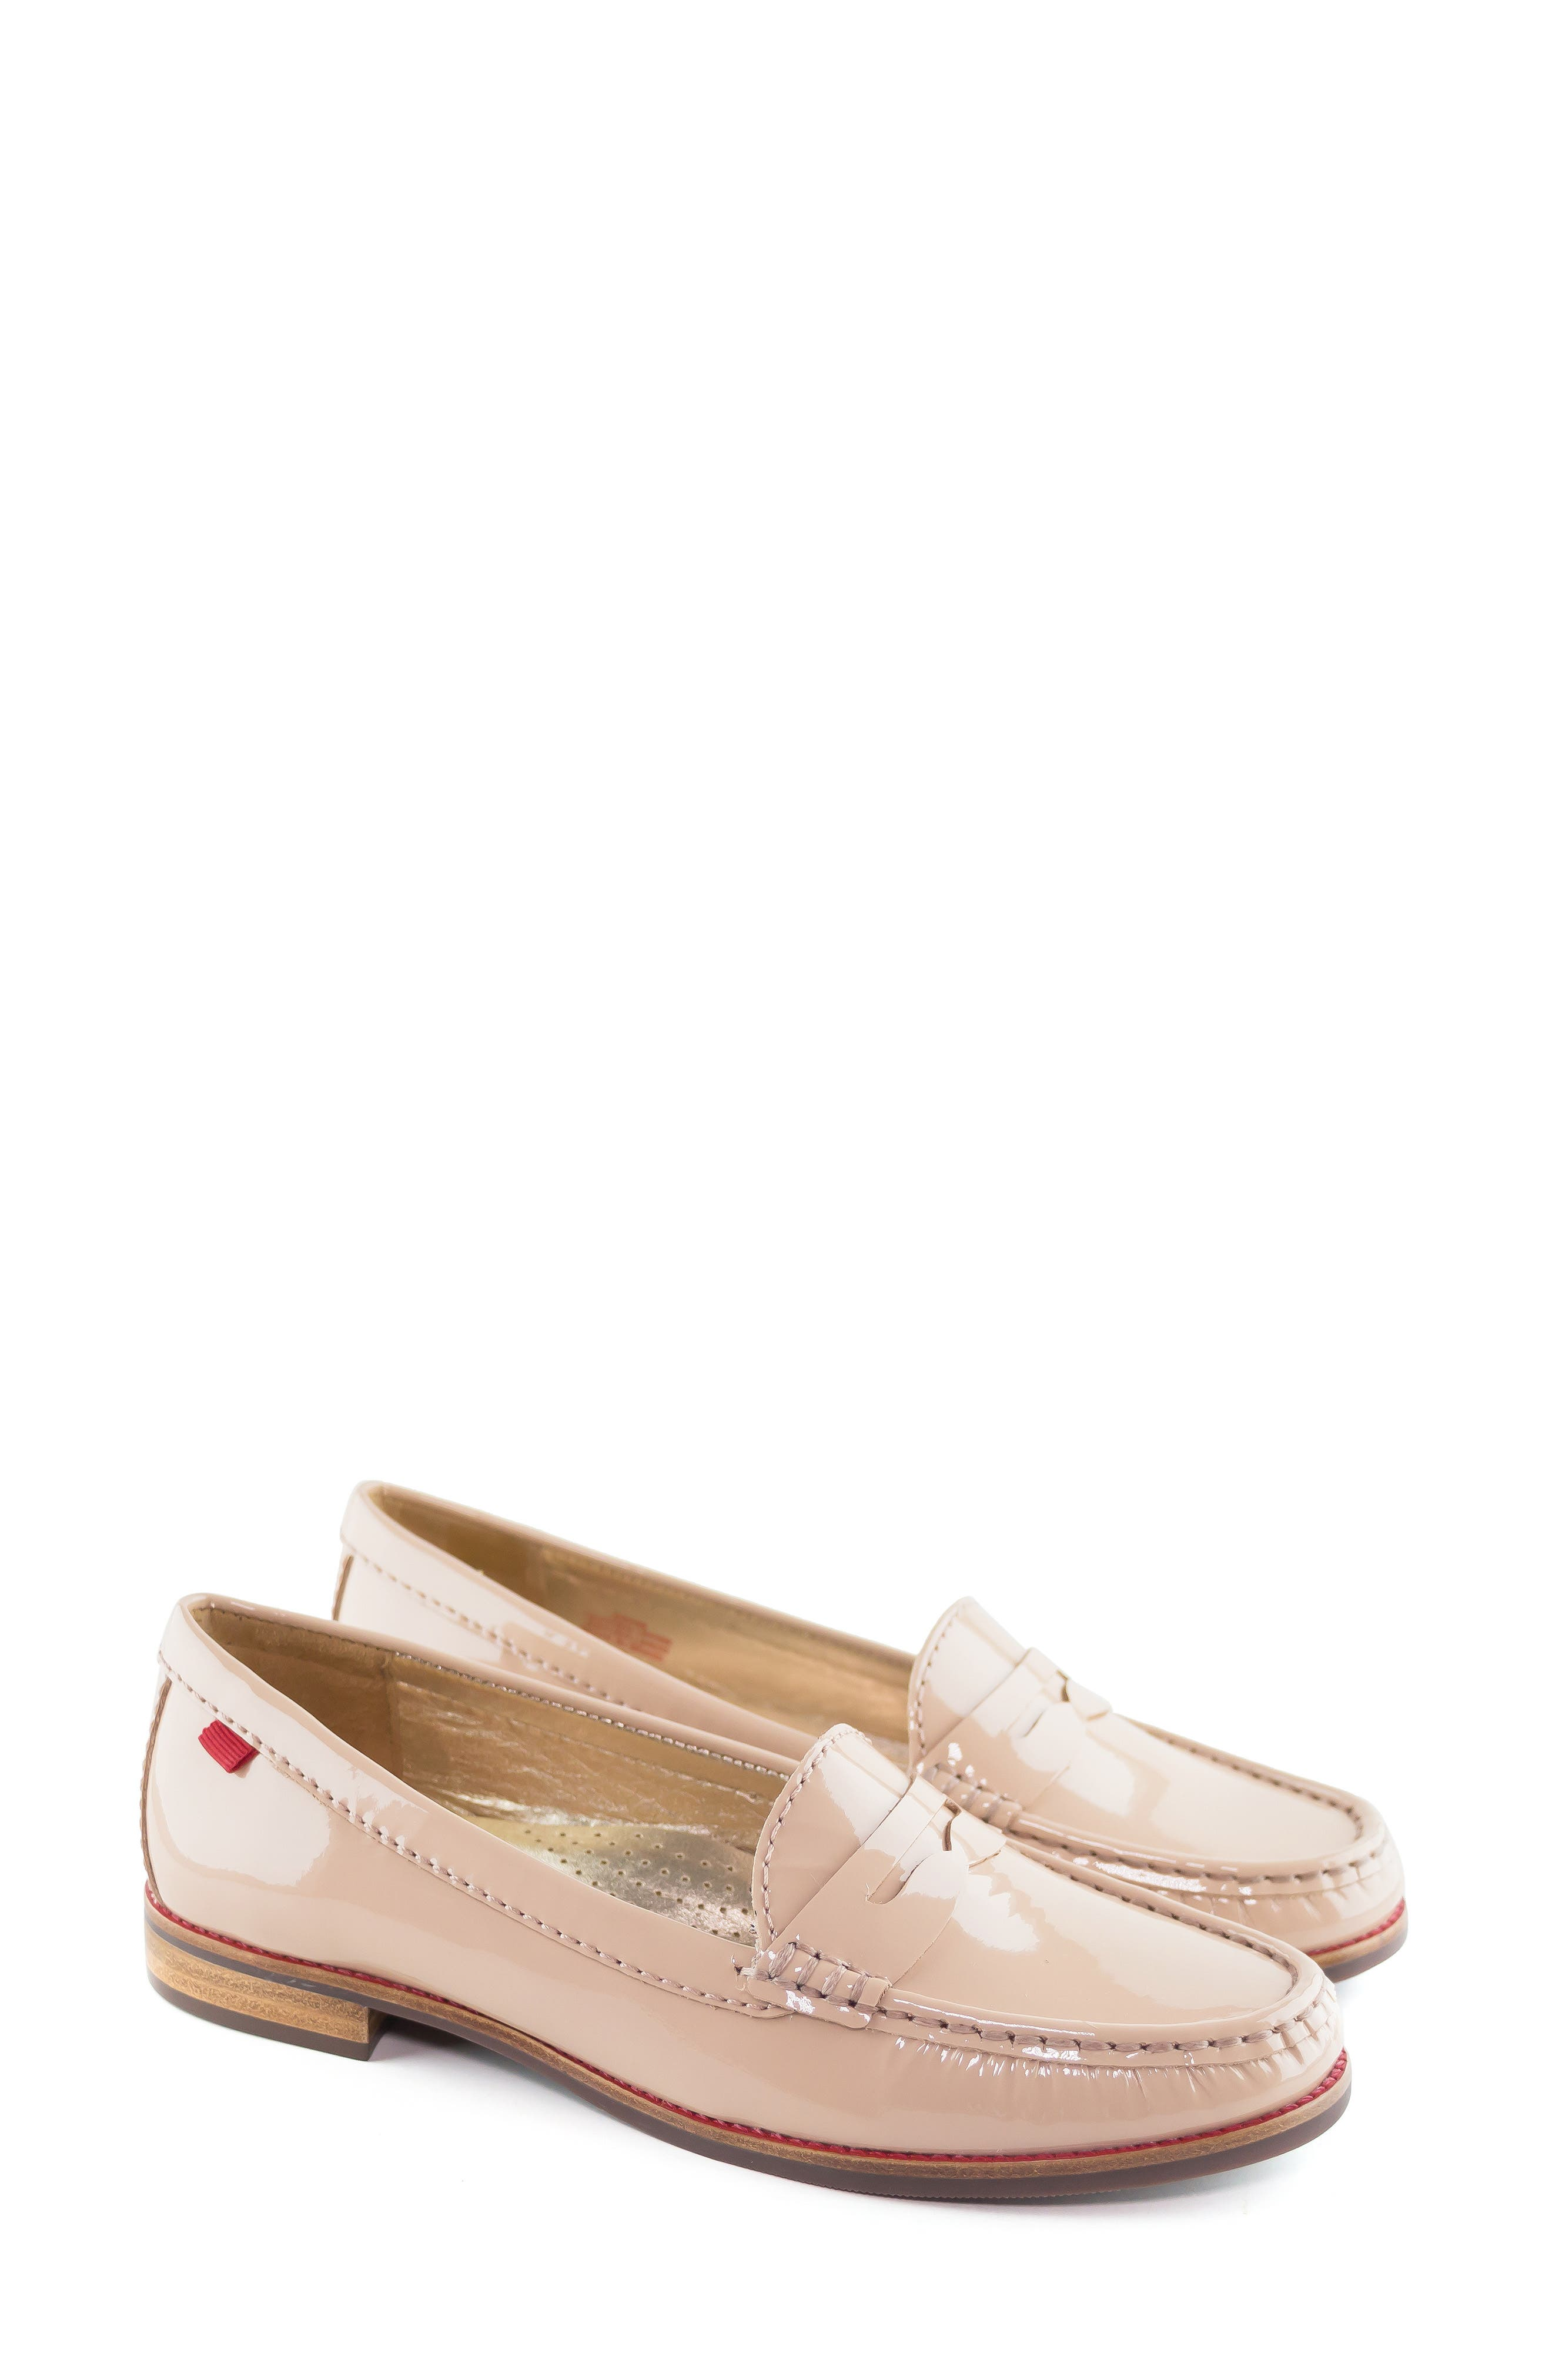 East Village Loafer,                             Alternate thumbnail 6, color,                             NUDE PATENT